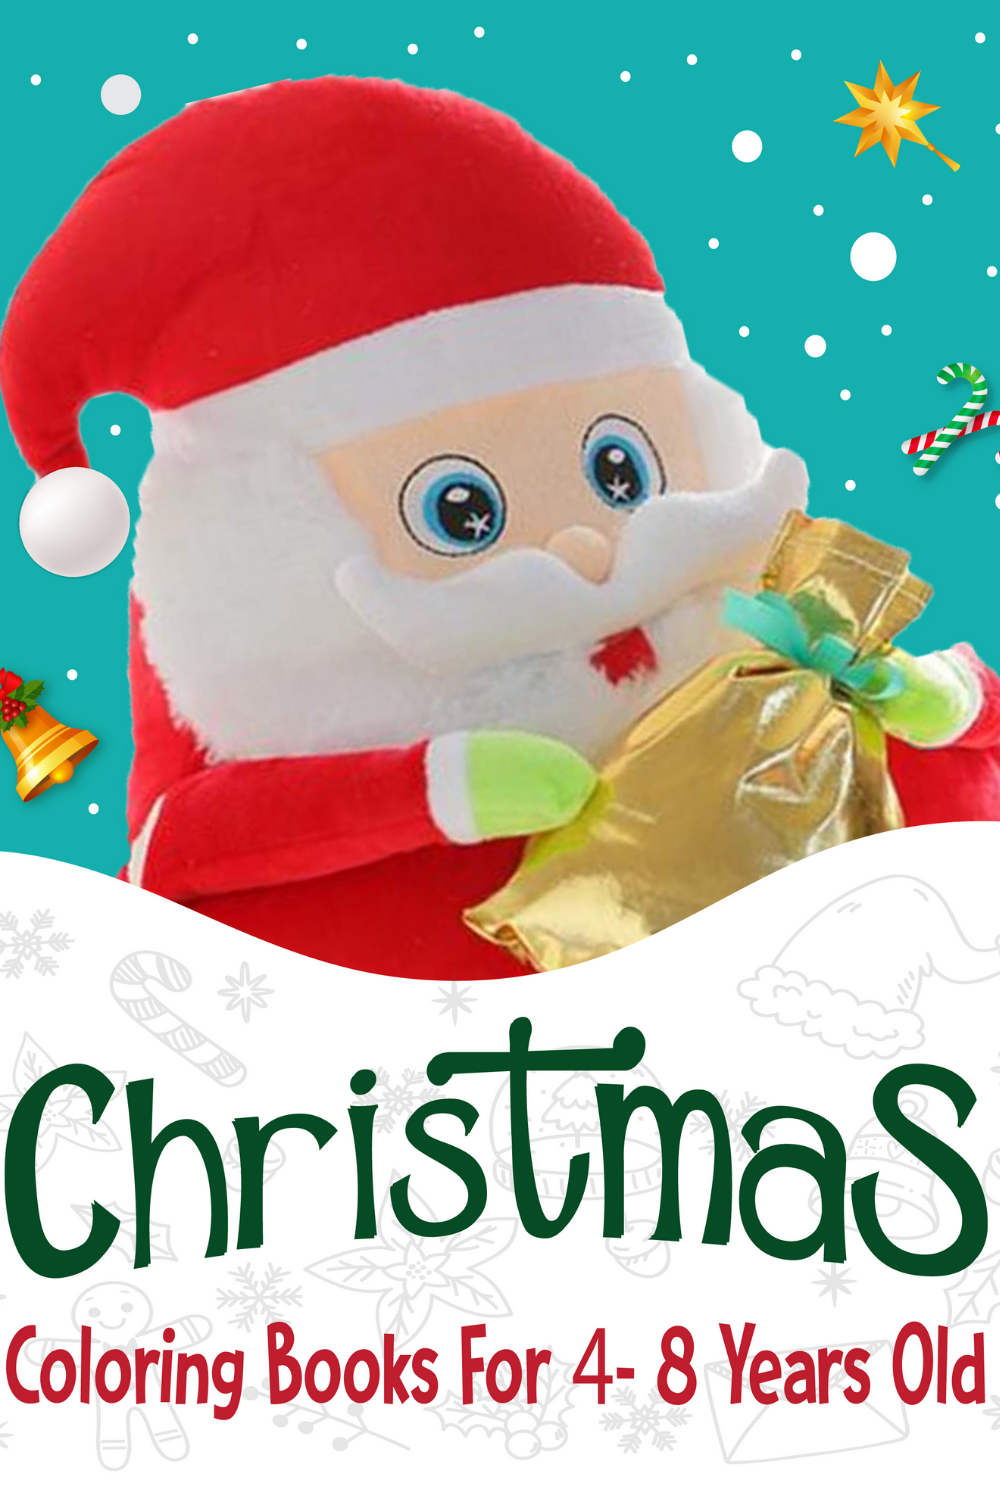 Christmas Coloring Books For 4 8 Years Old 50 Christmas Coloring Pages For Kids Toddler Kids Coloring Books Christmas Coloring Books Toddler Coloring Book